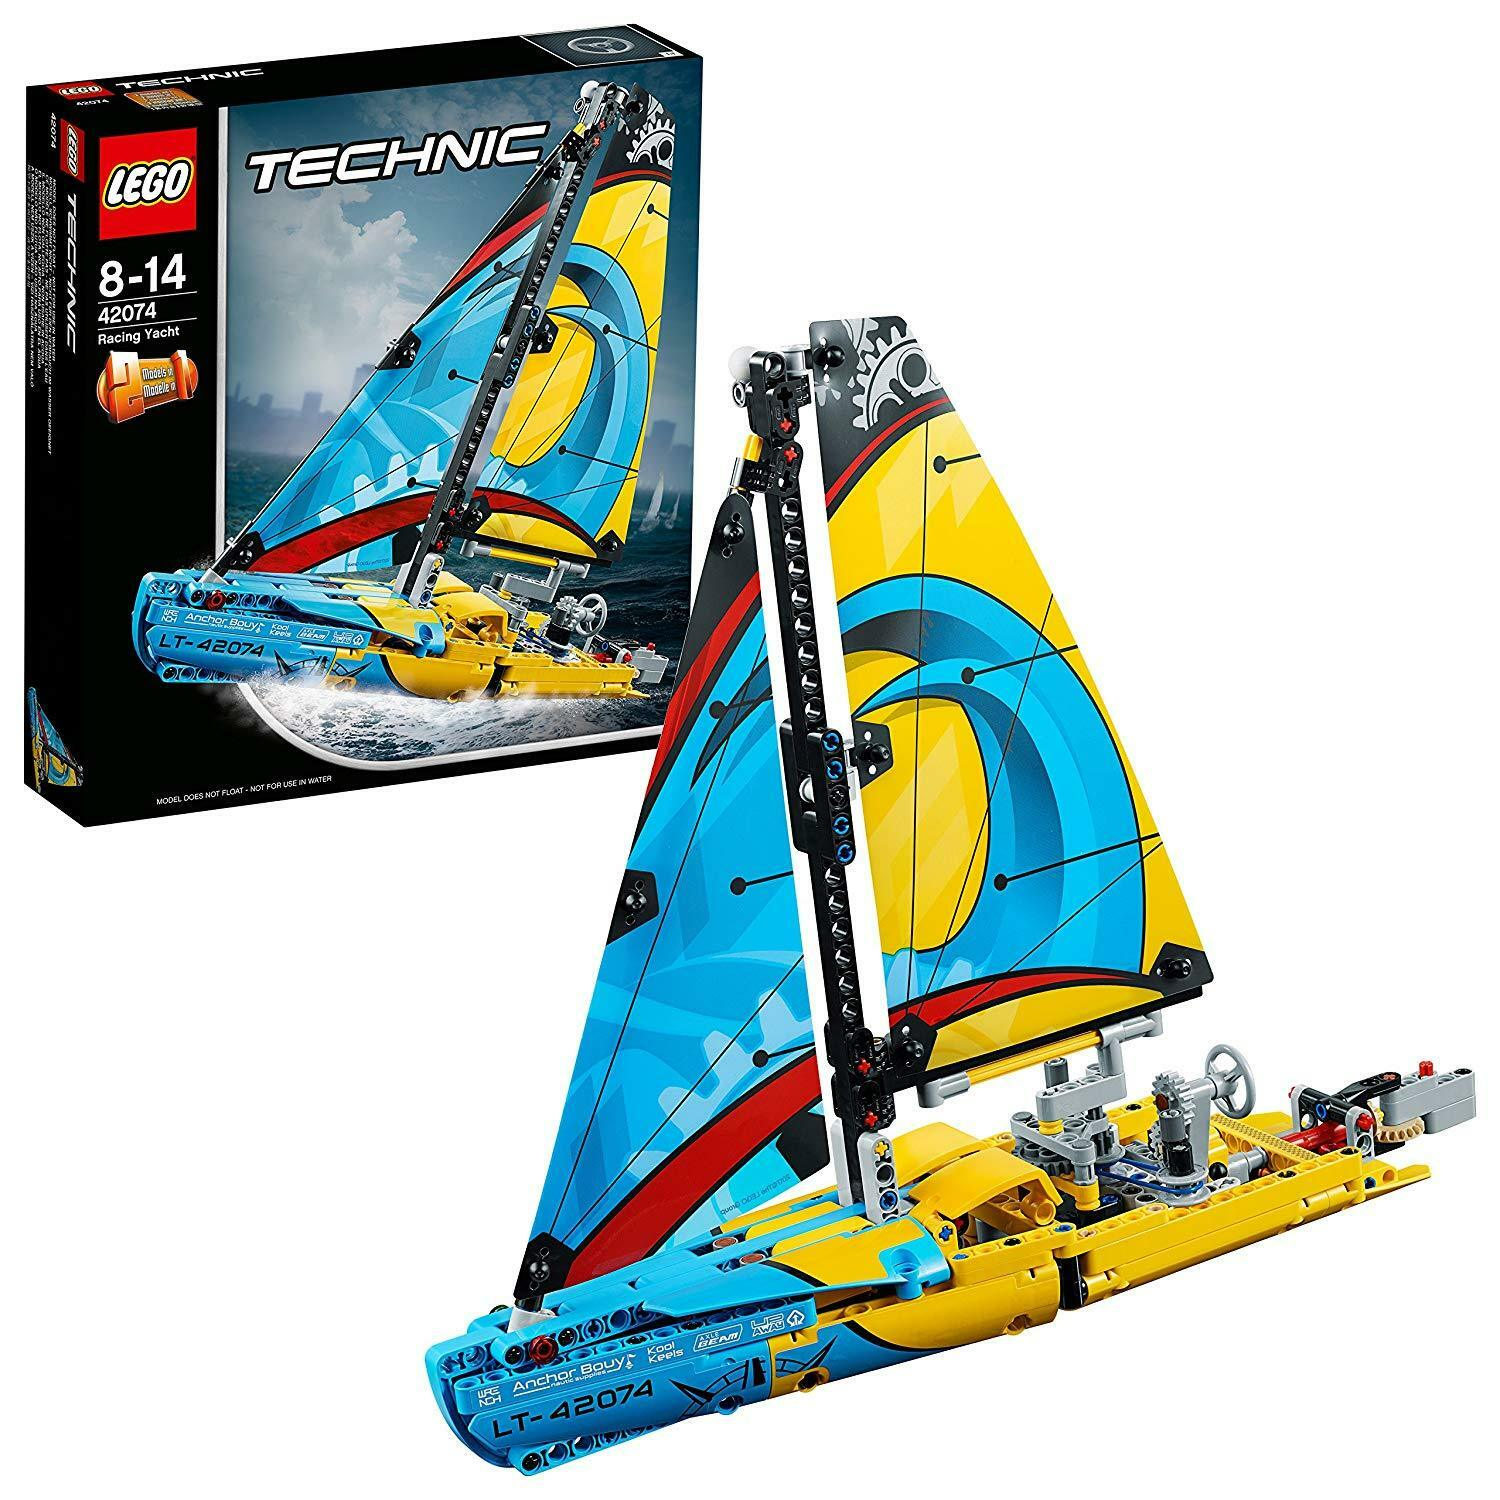 LEGO 42074 Technic Racing Yacht 2-IN-1 Model Boat And Catamaran Construction Toy